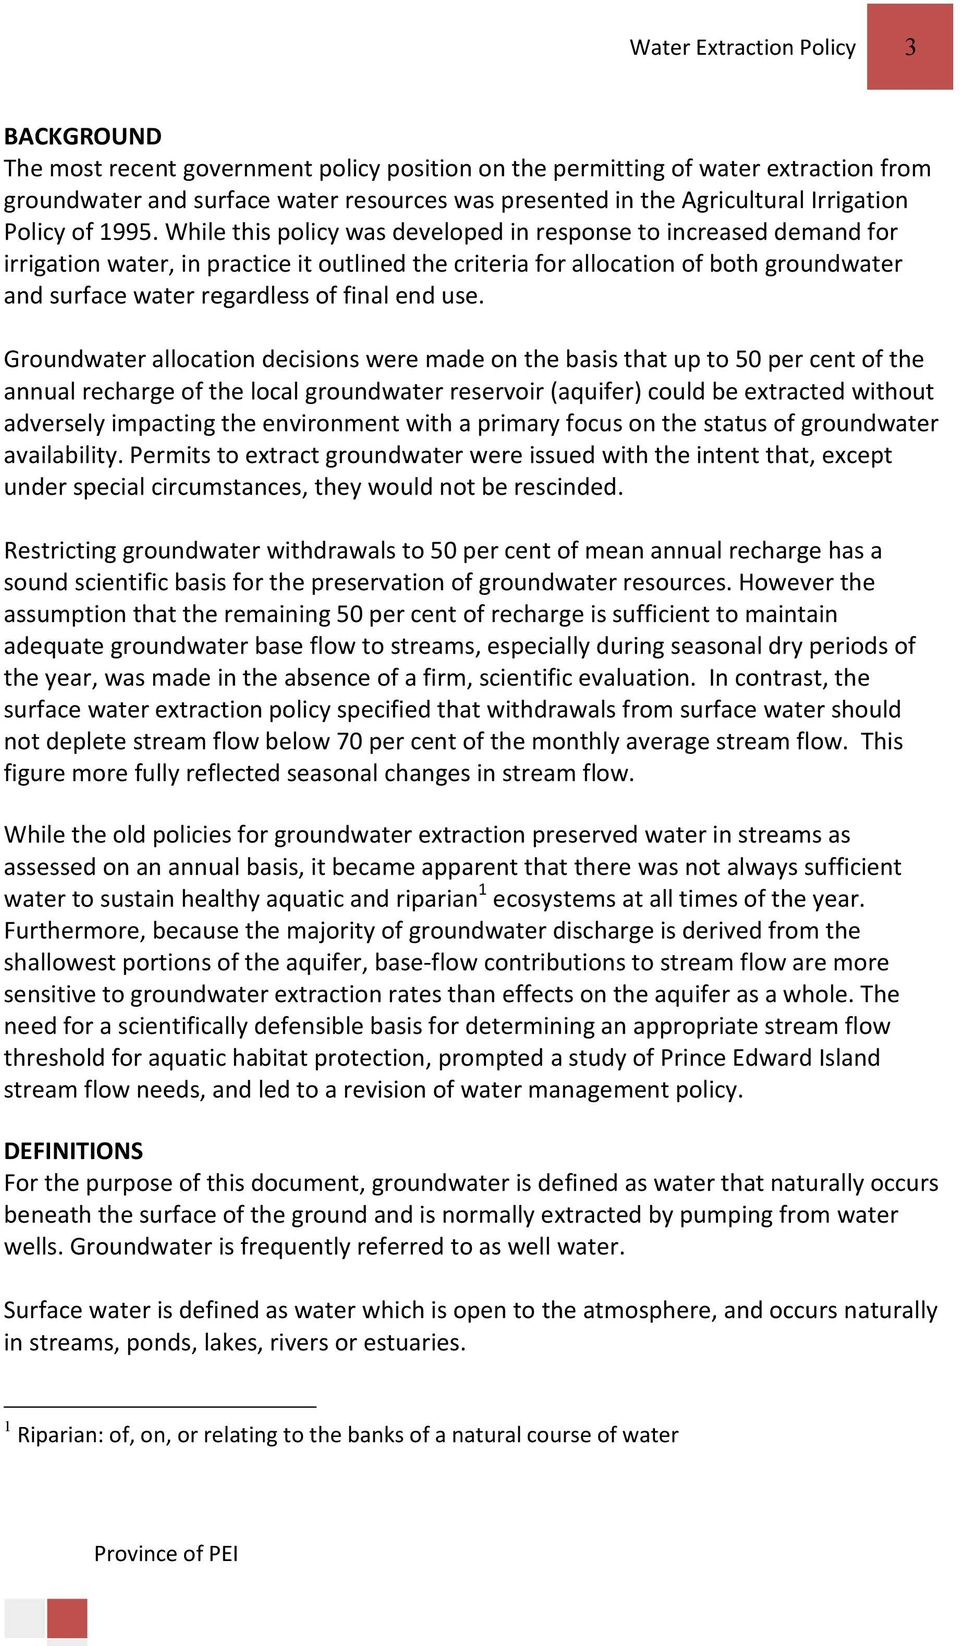 While this policy was developed in response to increased demand for irrigation water, in practice it outlined the criteria for allocation of both groundwater and surface water regardless of final end